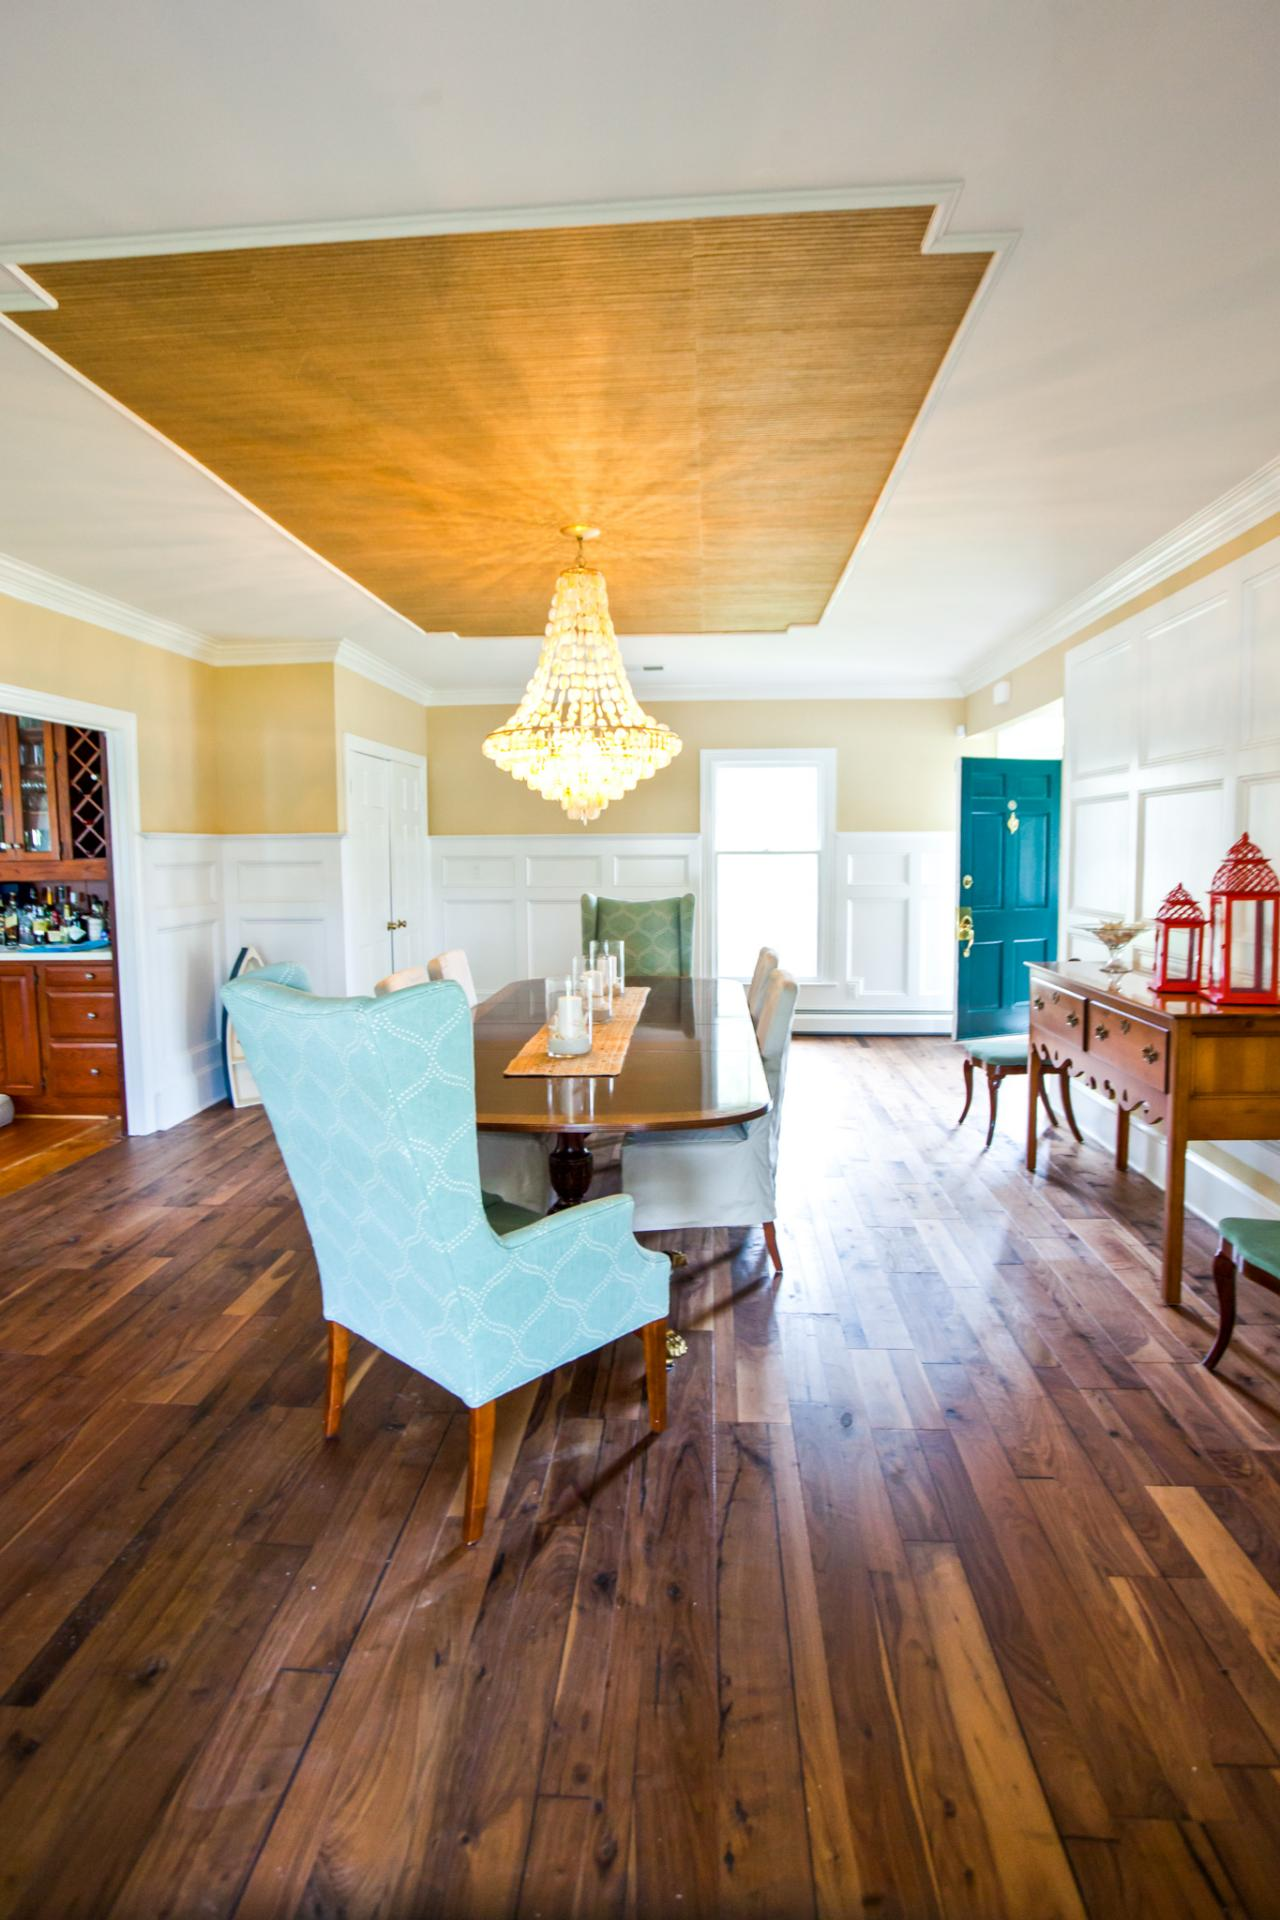 The floors are one of the first things a potential buyer sees. Source: HGTV